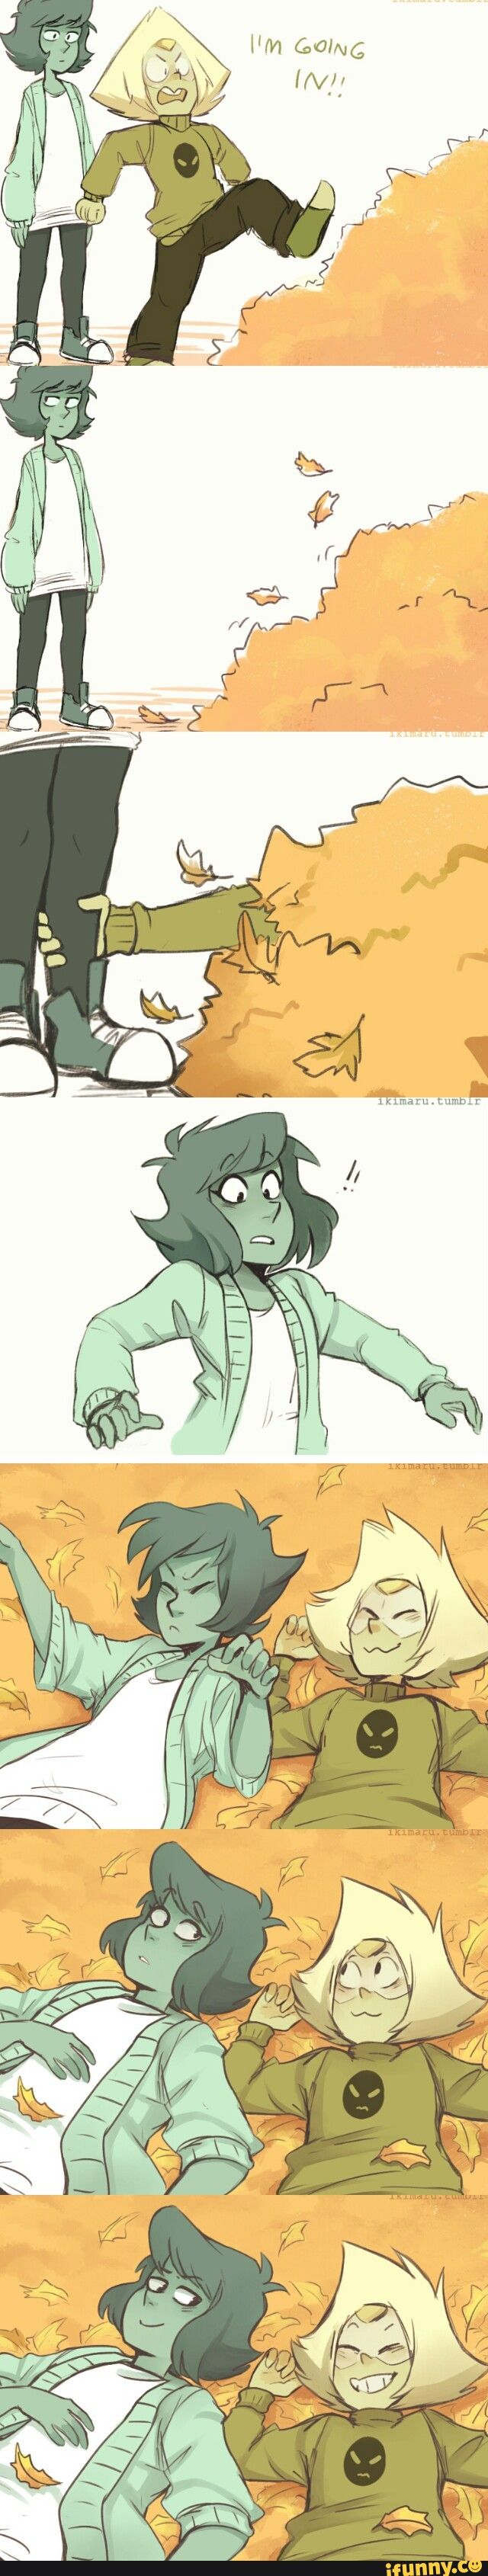 I'm slowly being dragged into lapidot hell